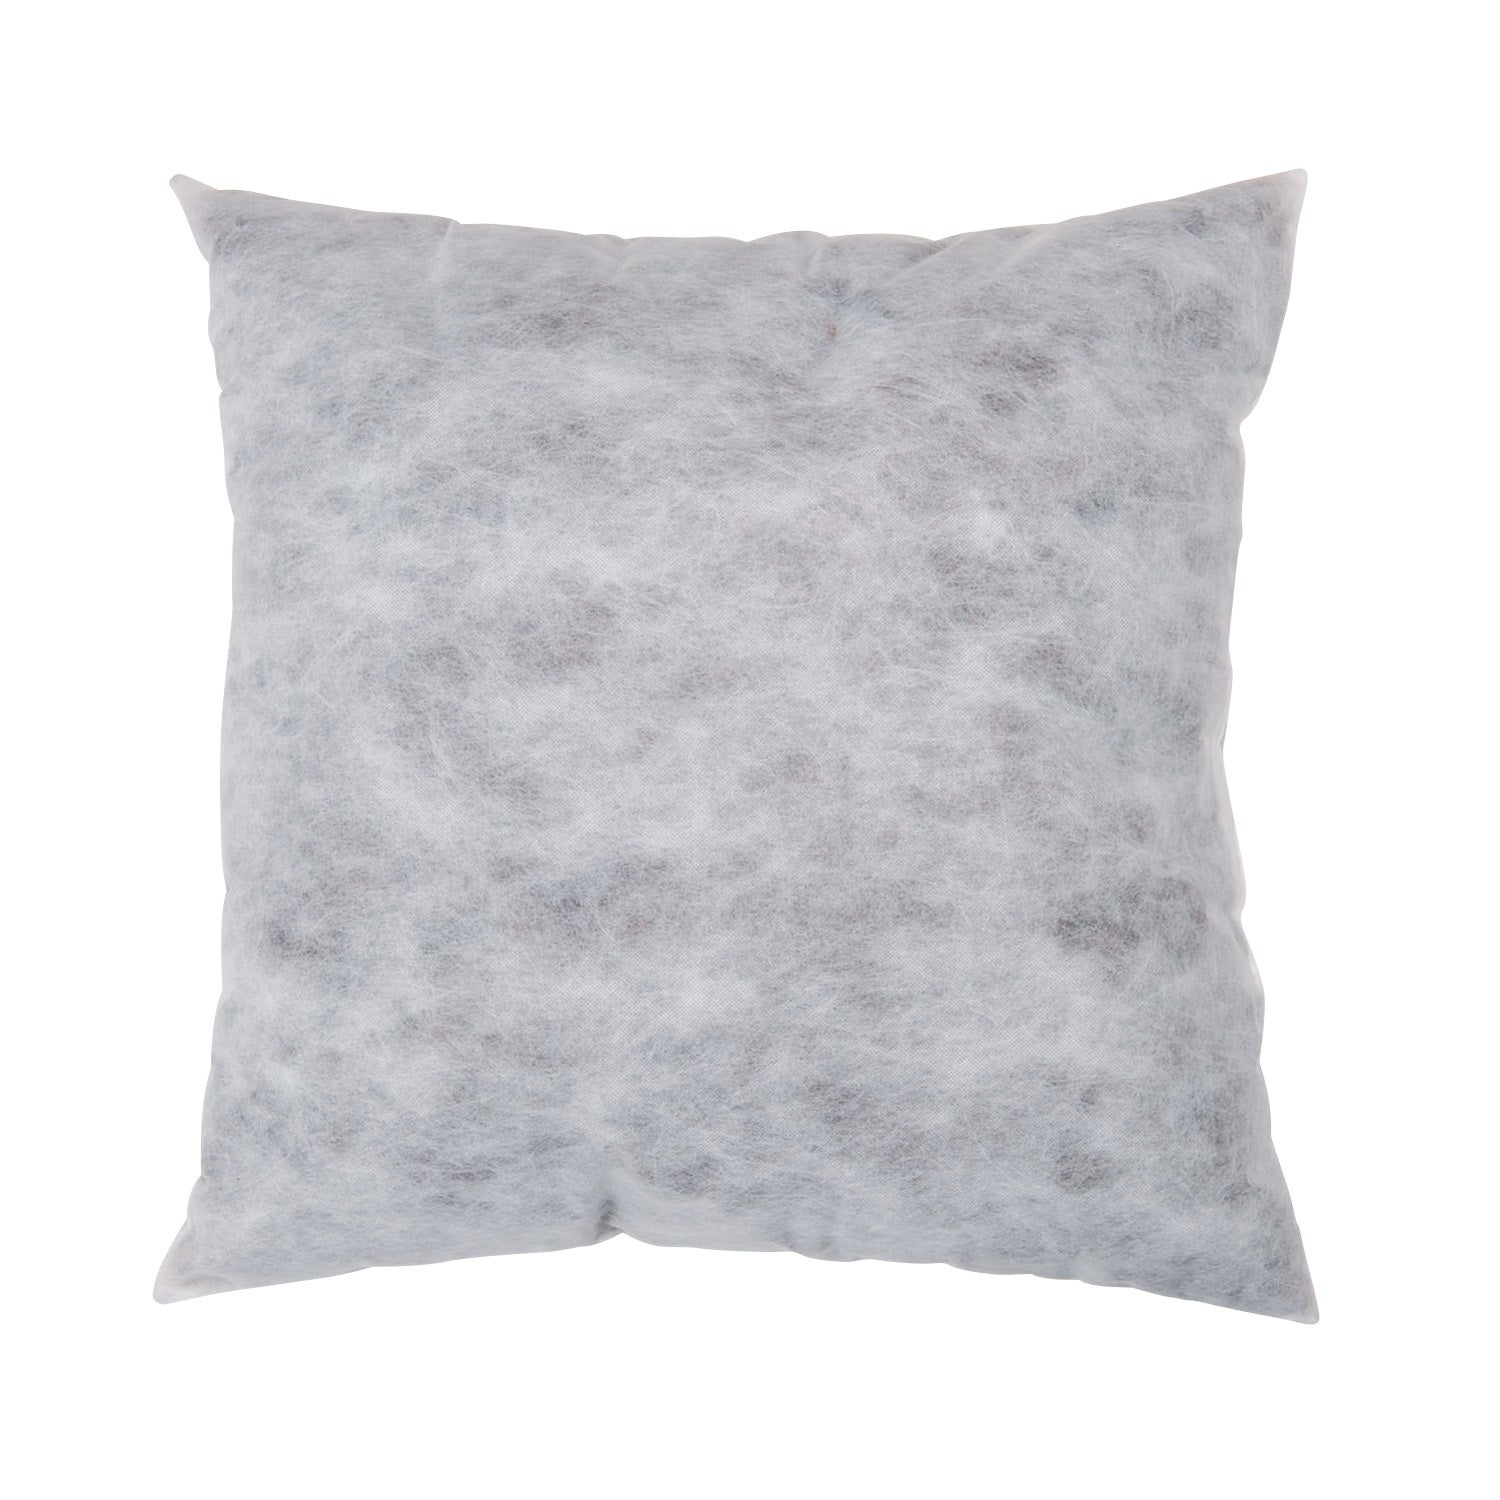 22-inch Non-Woven Polyester Pillow Insert